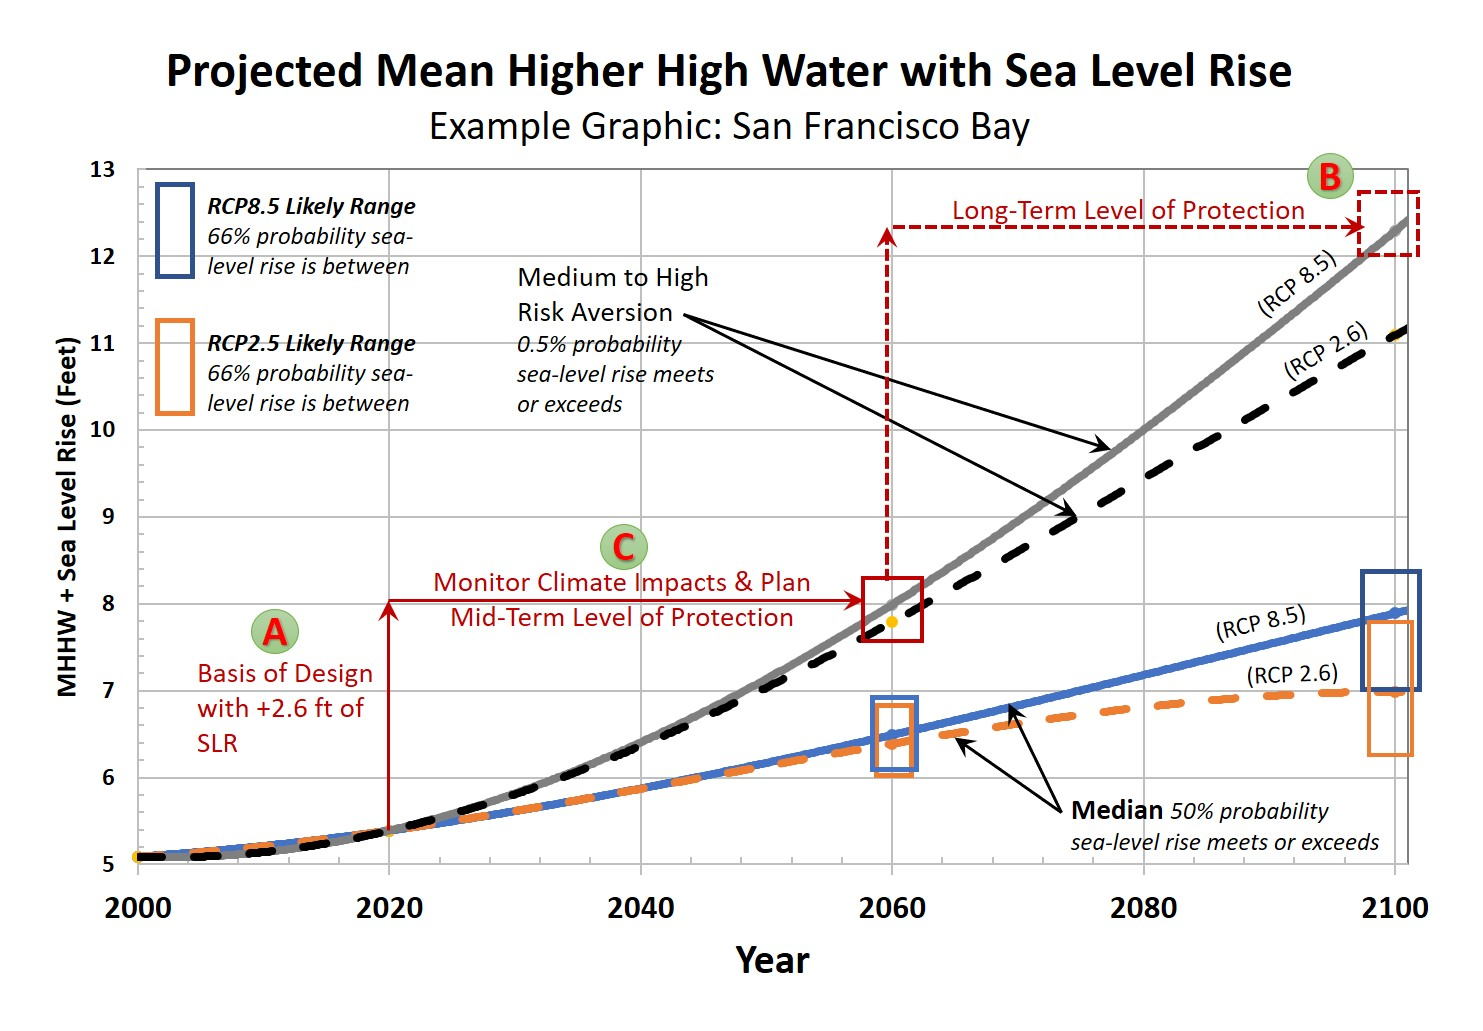 Projected Mean Higher High Water with Sea Level Rise chart